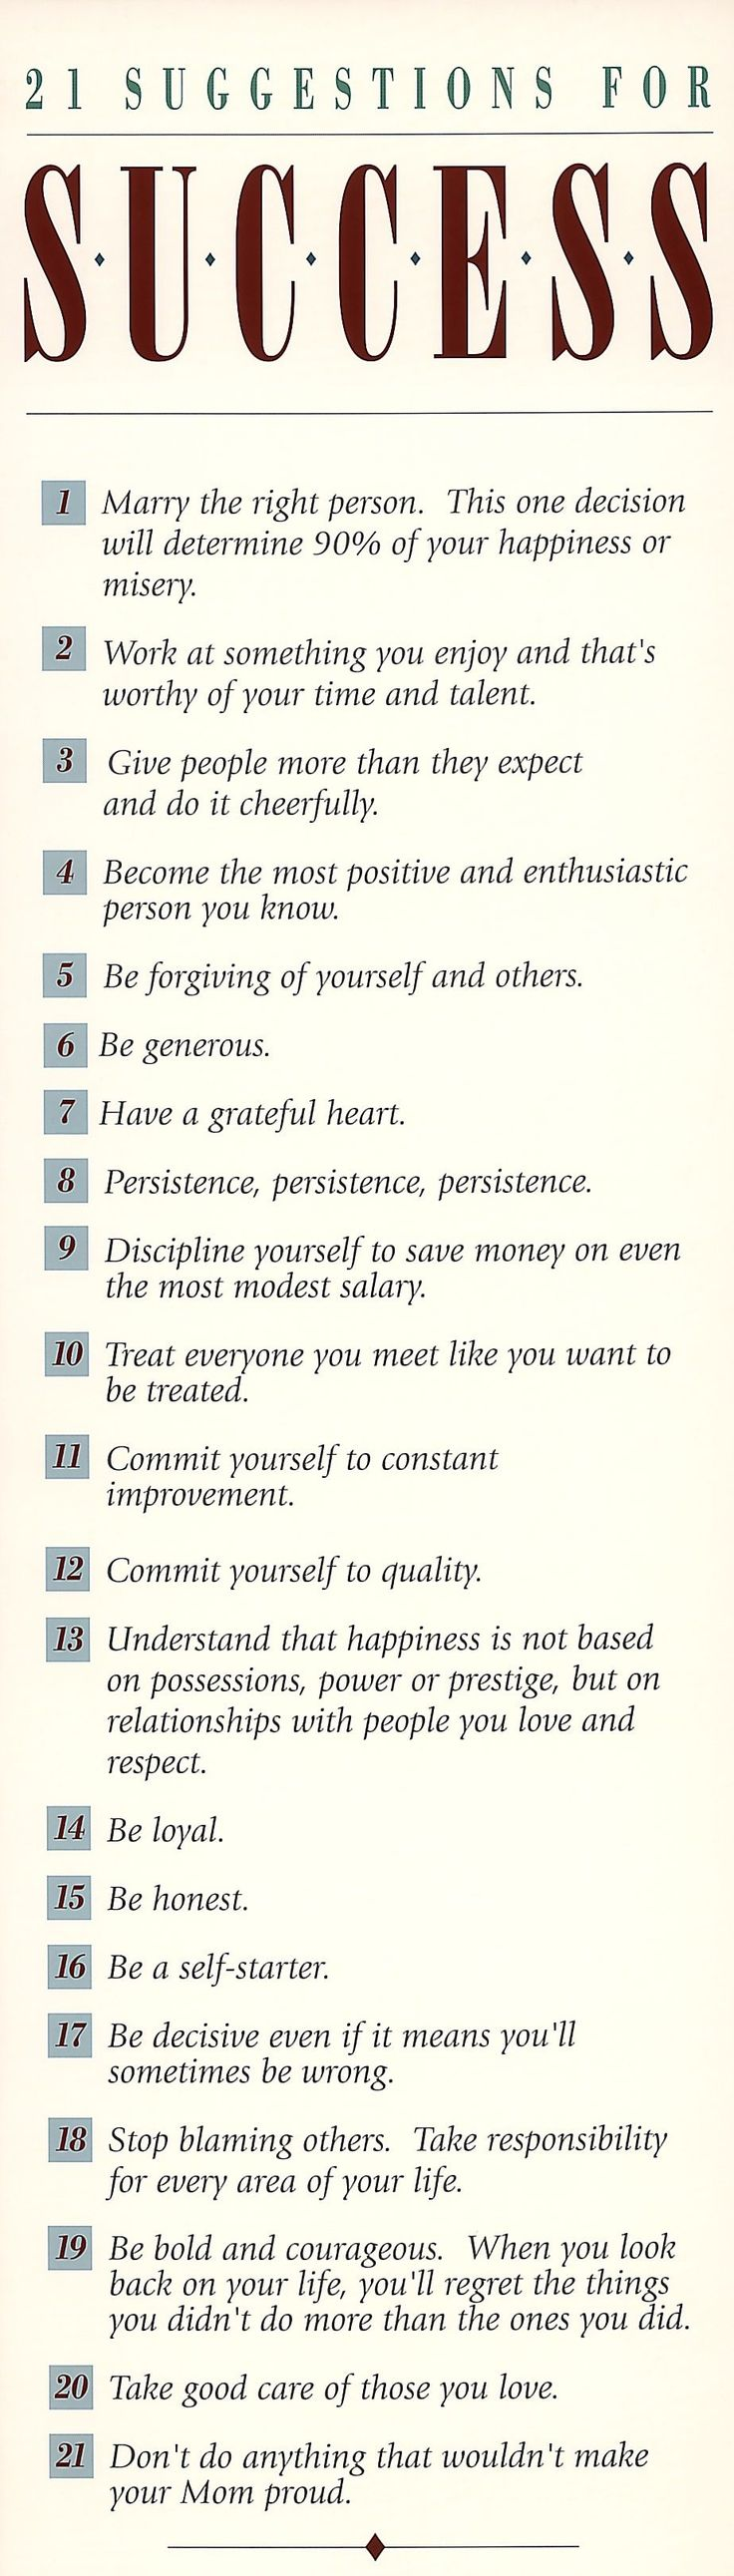 21 Suggestions for Success This is very true and words to live by for so many.